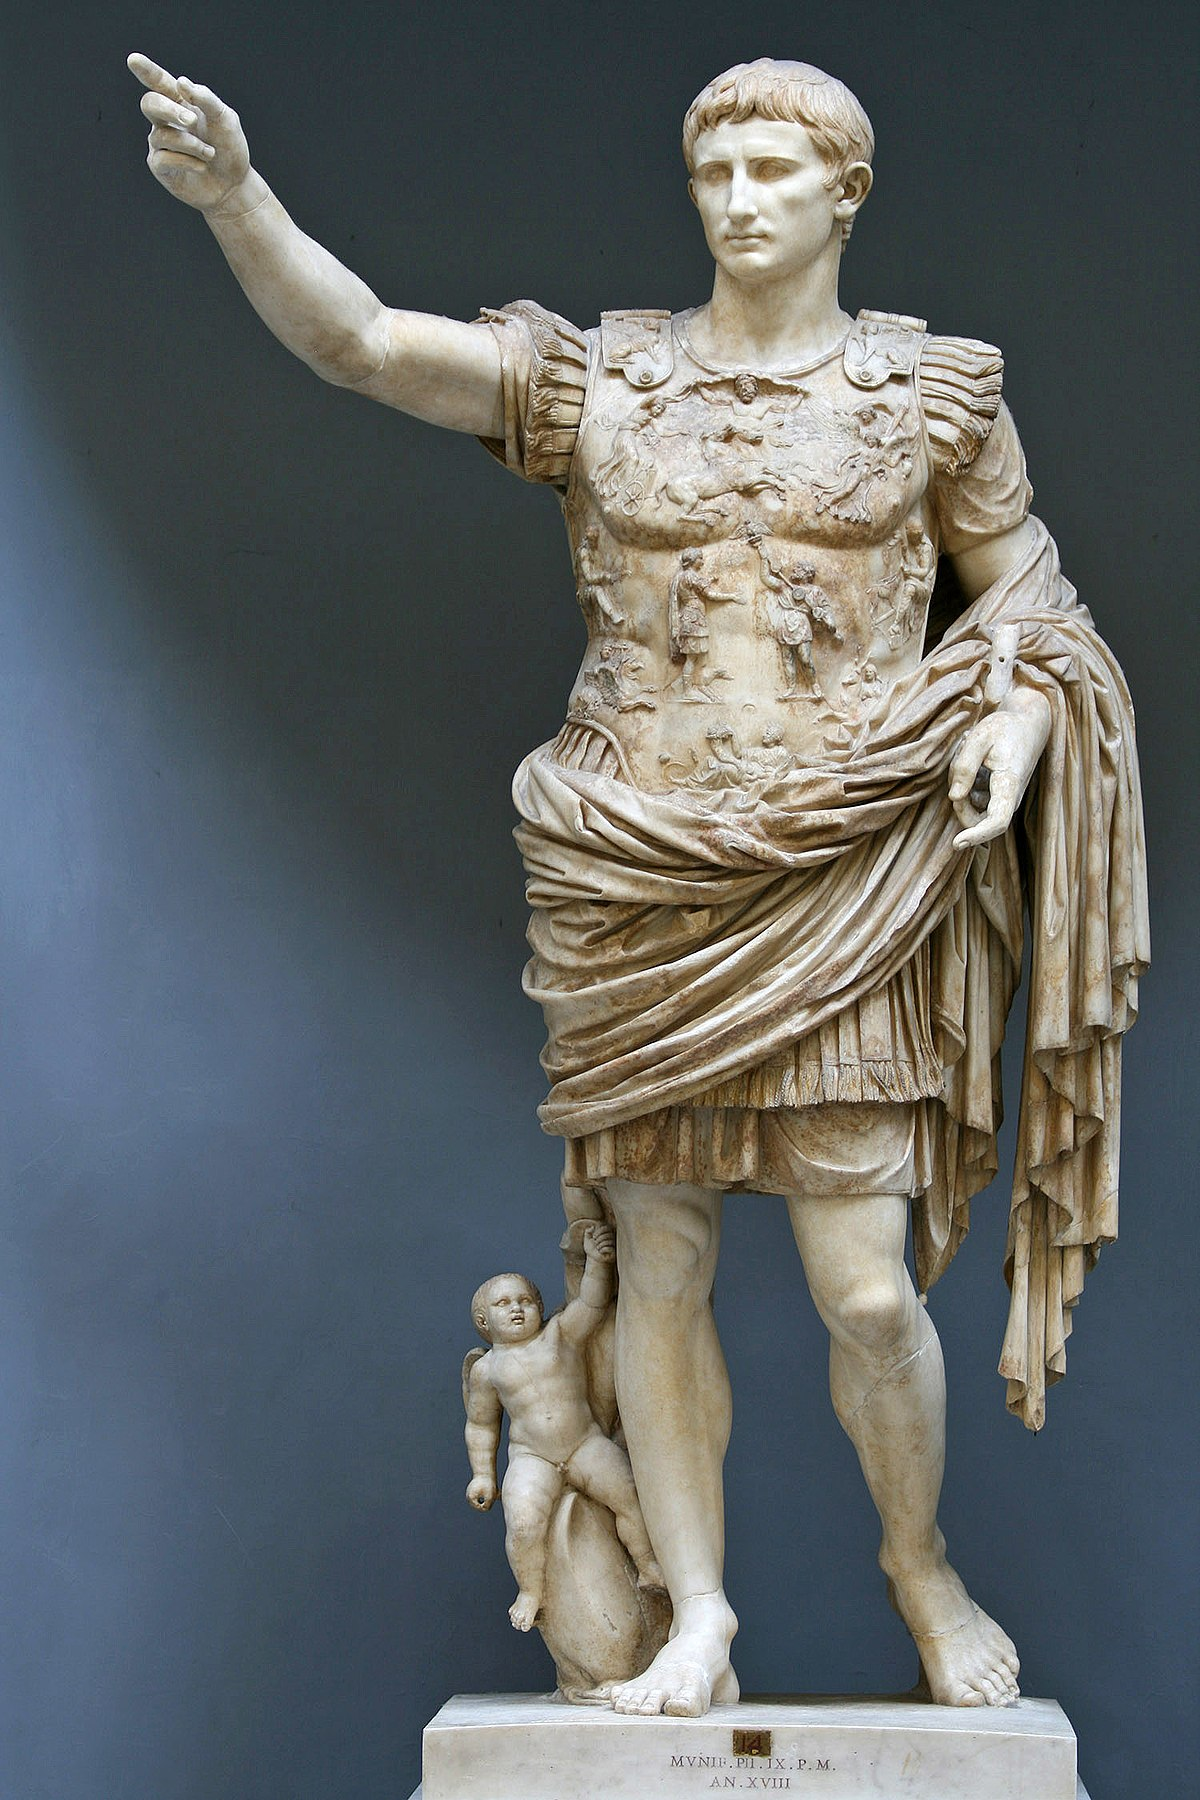 Augustus, the first emperor of the Roman Empire, reigning from 27 BC until his death in AD 14